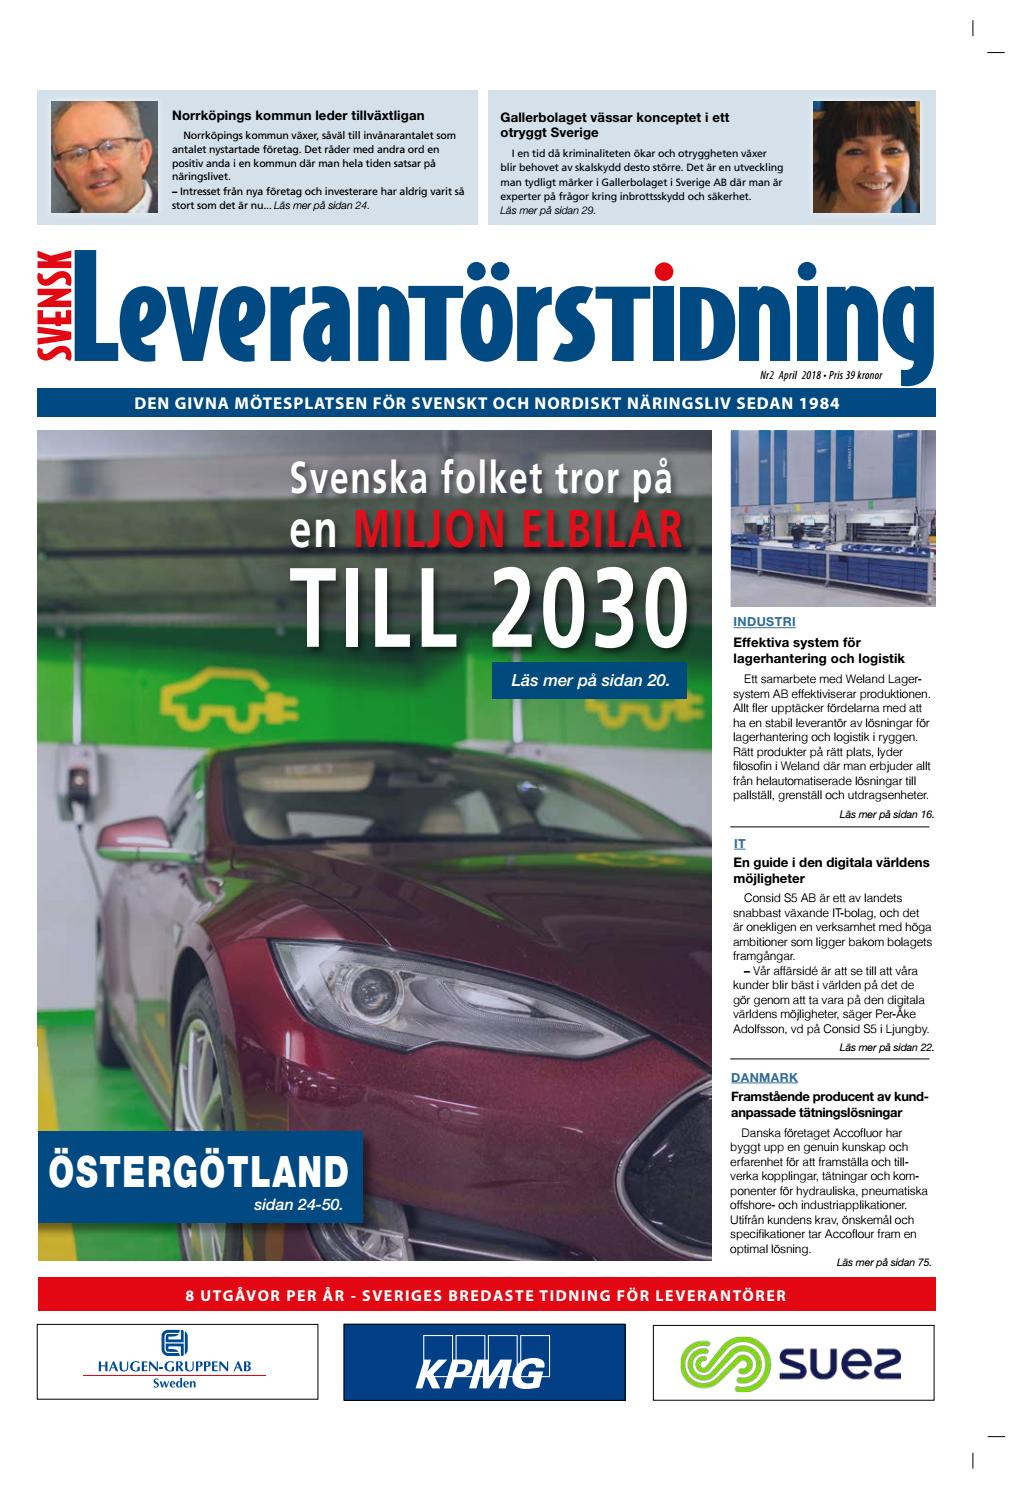 Svensk Leverantörstidning nr-2 2018 by Hexanova Media Group AB - issuu b957c81ee9a97